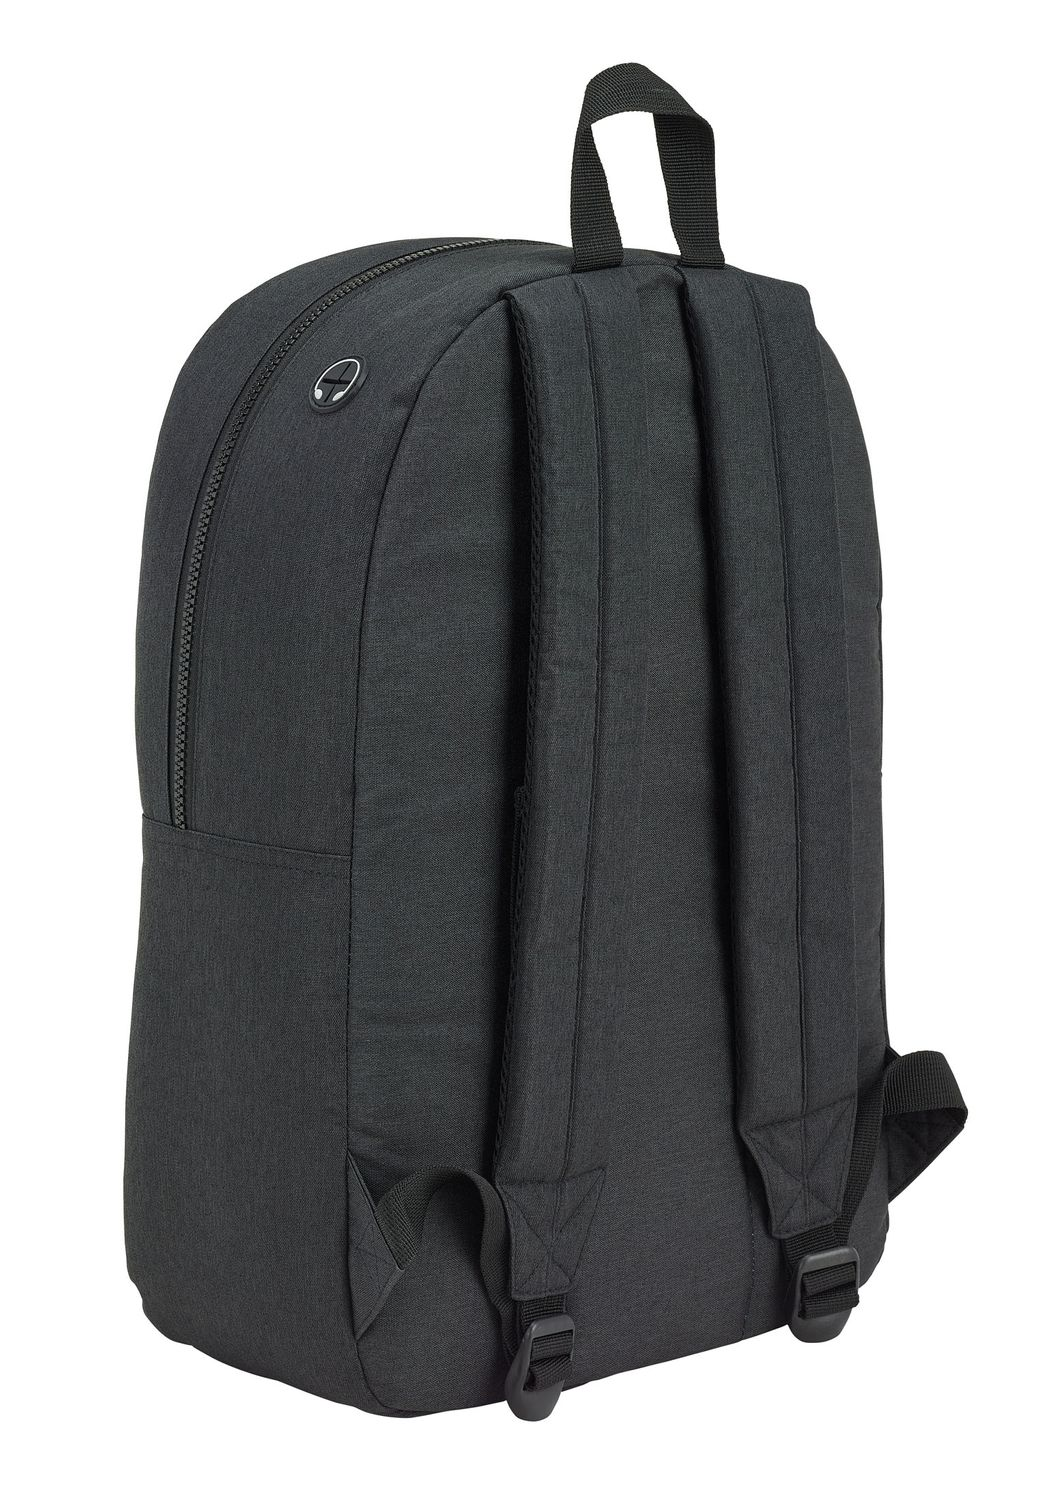 "Blackfit Black & Black Laptop Backpack 15.6"" – image 2"